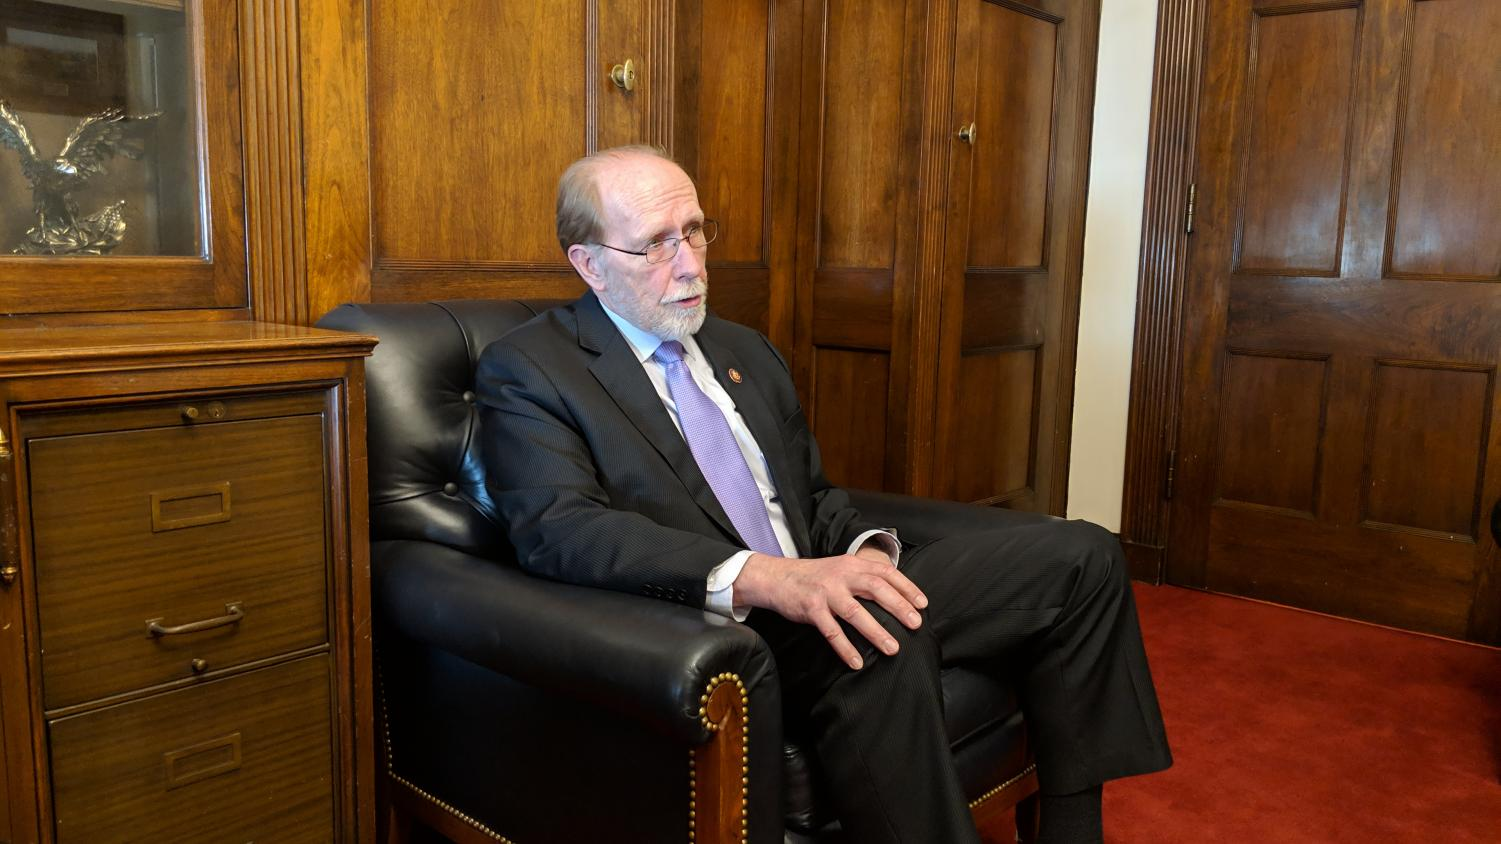 Rep. Dave Loebsack, D-Iowa City, speaks with The Daily Iowan inside the Longworth House Office Building in Washington on Tuesday, March 26, 2019.